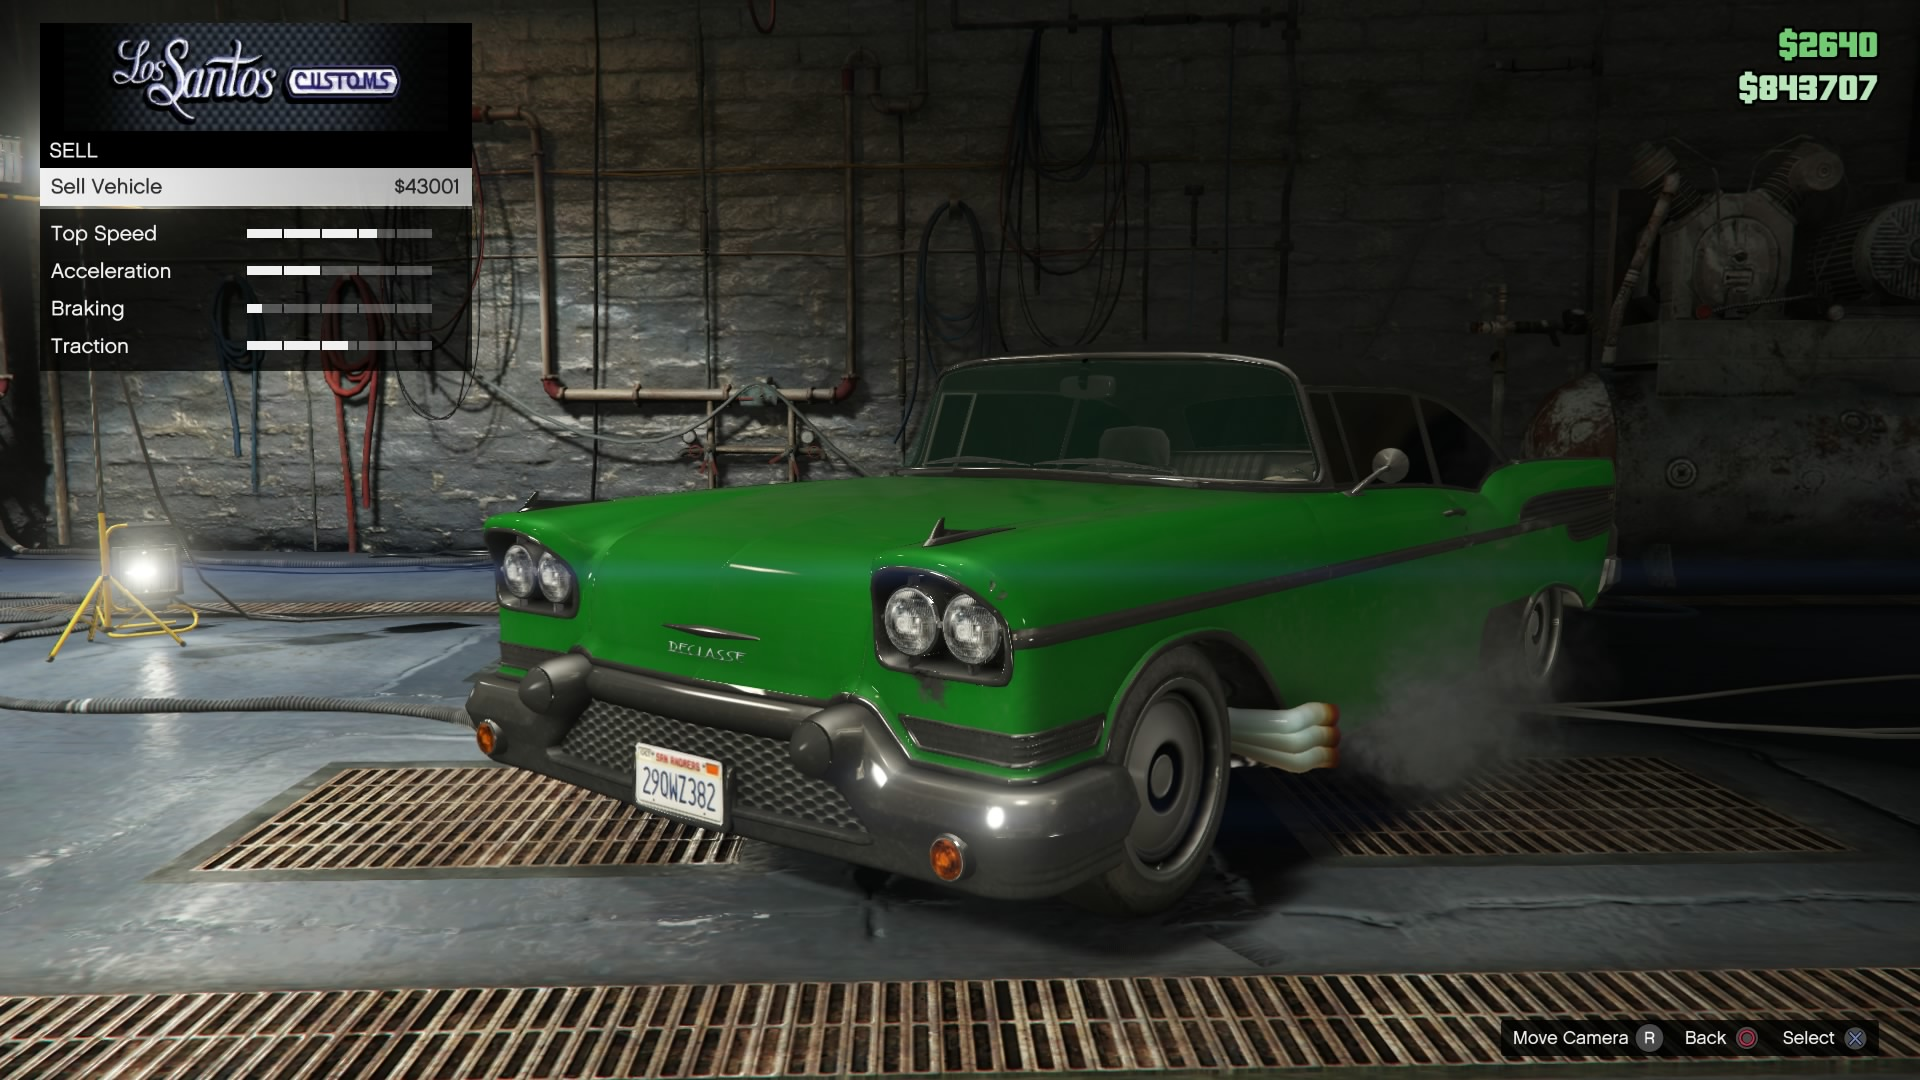 [psa] [gta online] grove street cars now sell for $40 000 each since hesits update [screenshot]